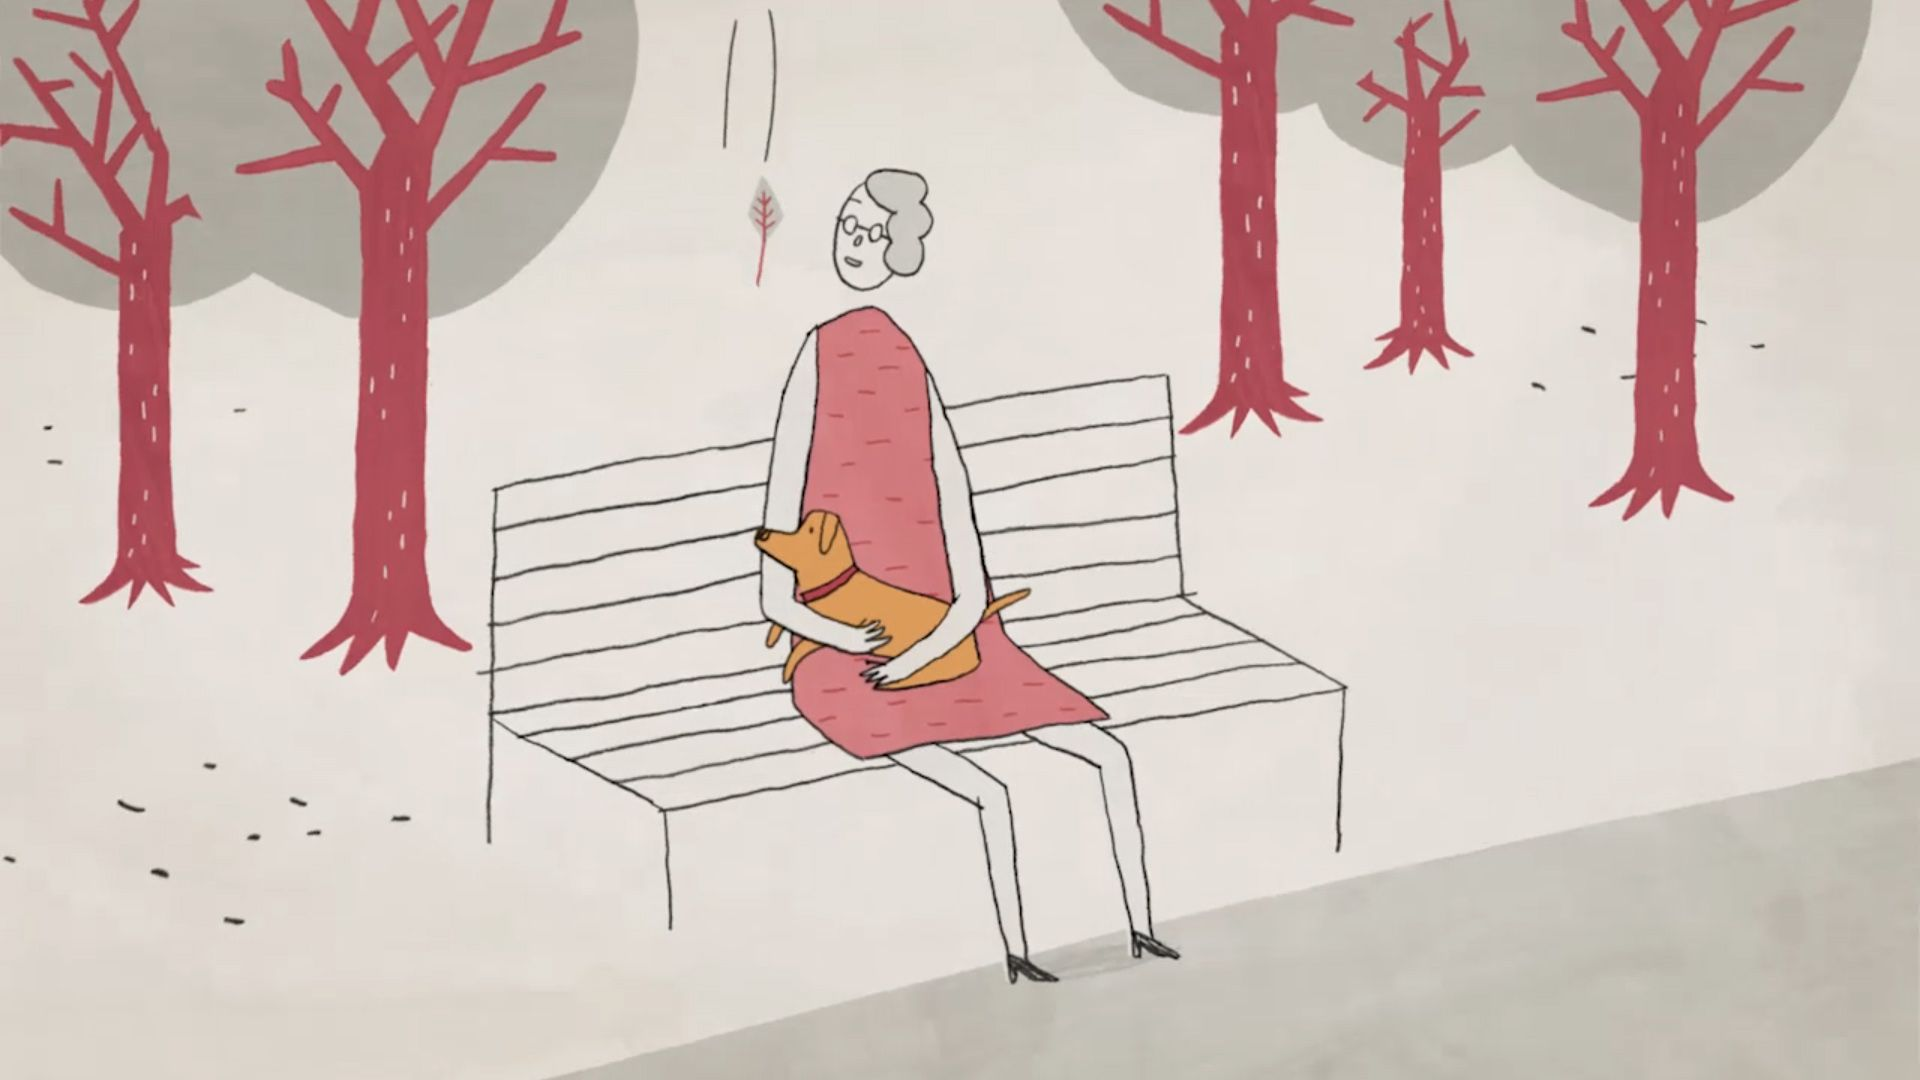 A series of five animations for the agency Mullen and their client MassMutual. Each animation features a different true life story raising the importance of planning for the unexpected. Working with the illustration and art of Brian Rea we brought to life five stories about life, death, and the great moments in between.